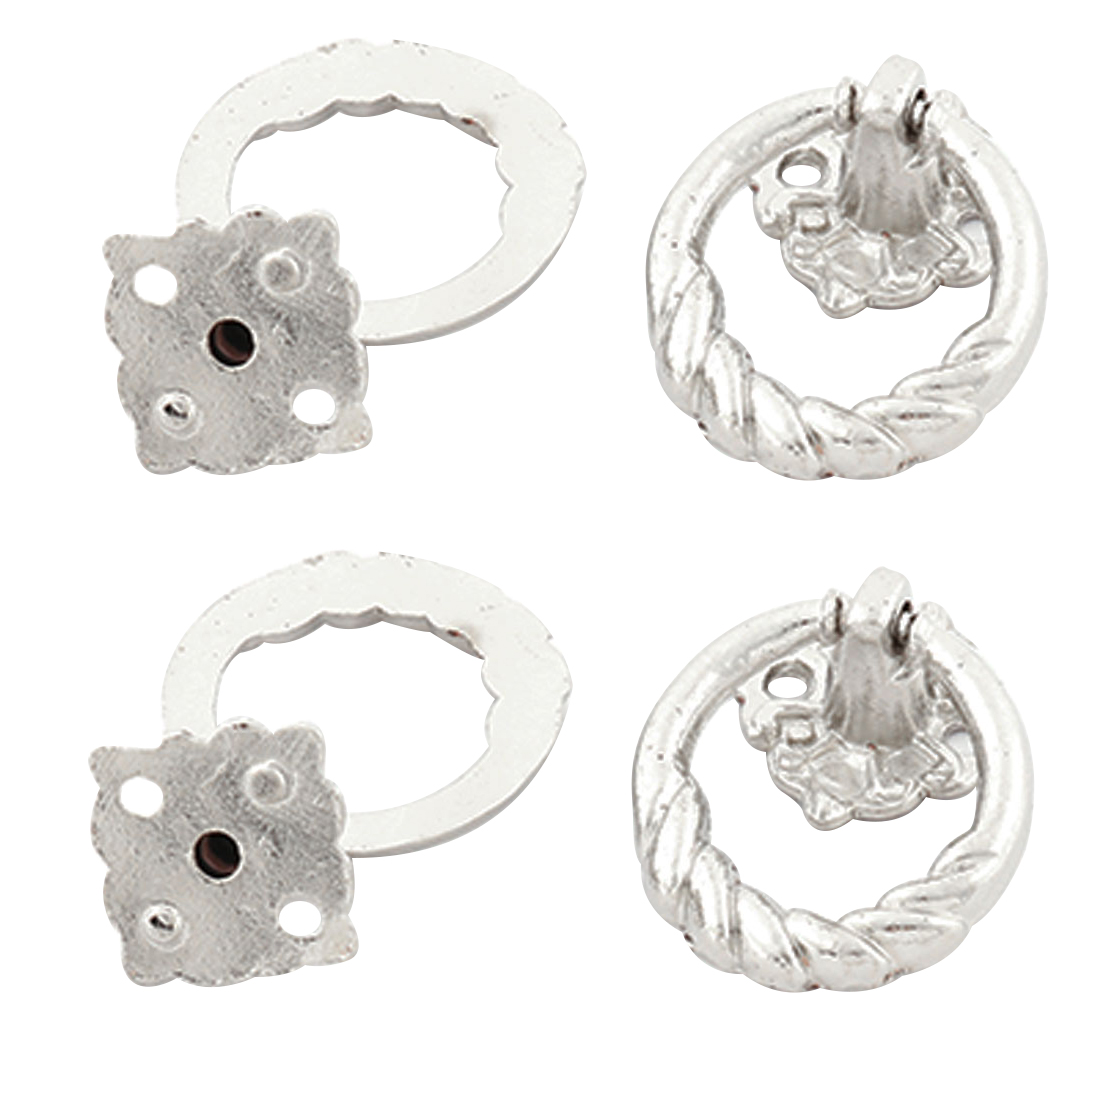 Cupboard Drawer Dresser Metal Single Hole Ring Pull Handle Knob Silver Tone 4pcs